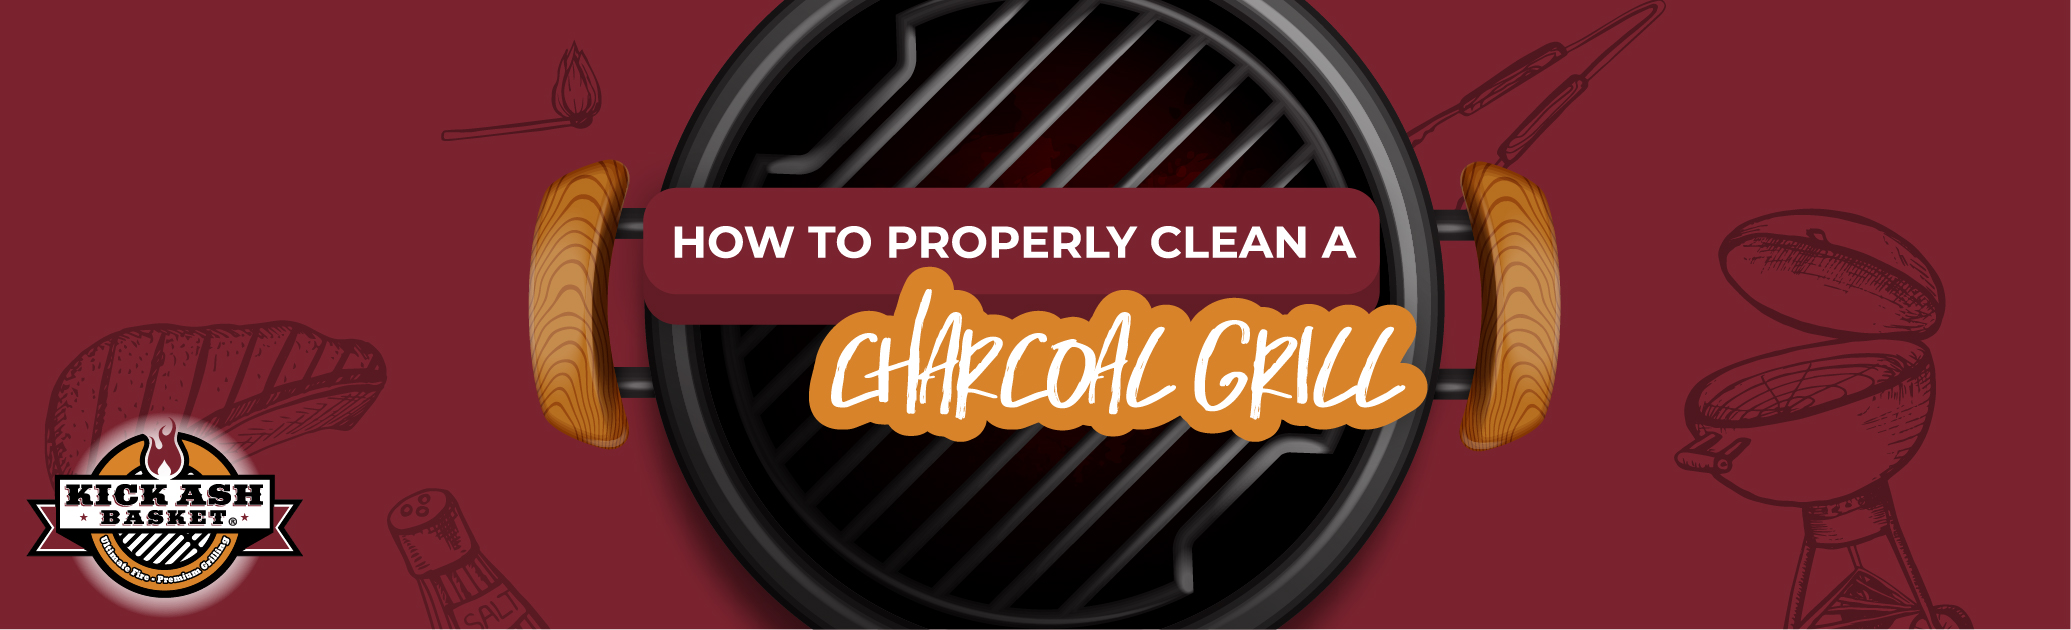 How to Properly Clean a Charcoal Grill